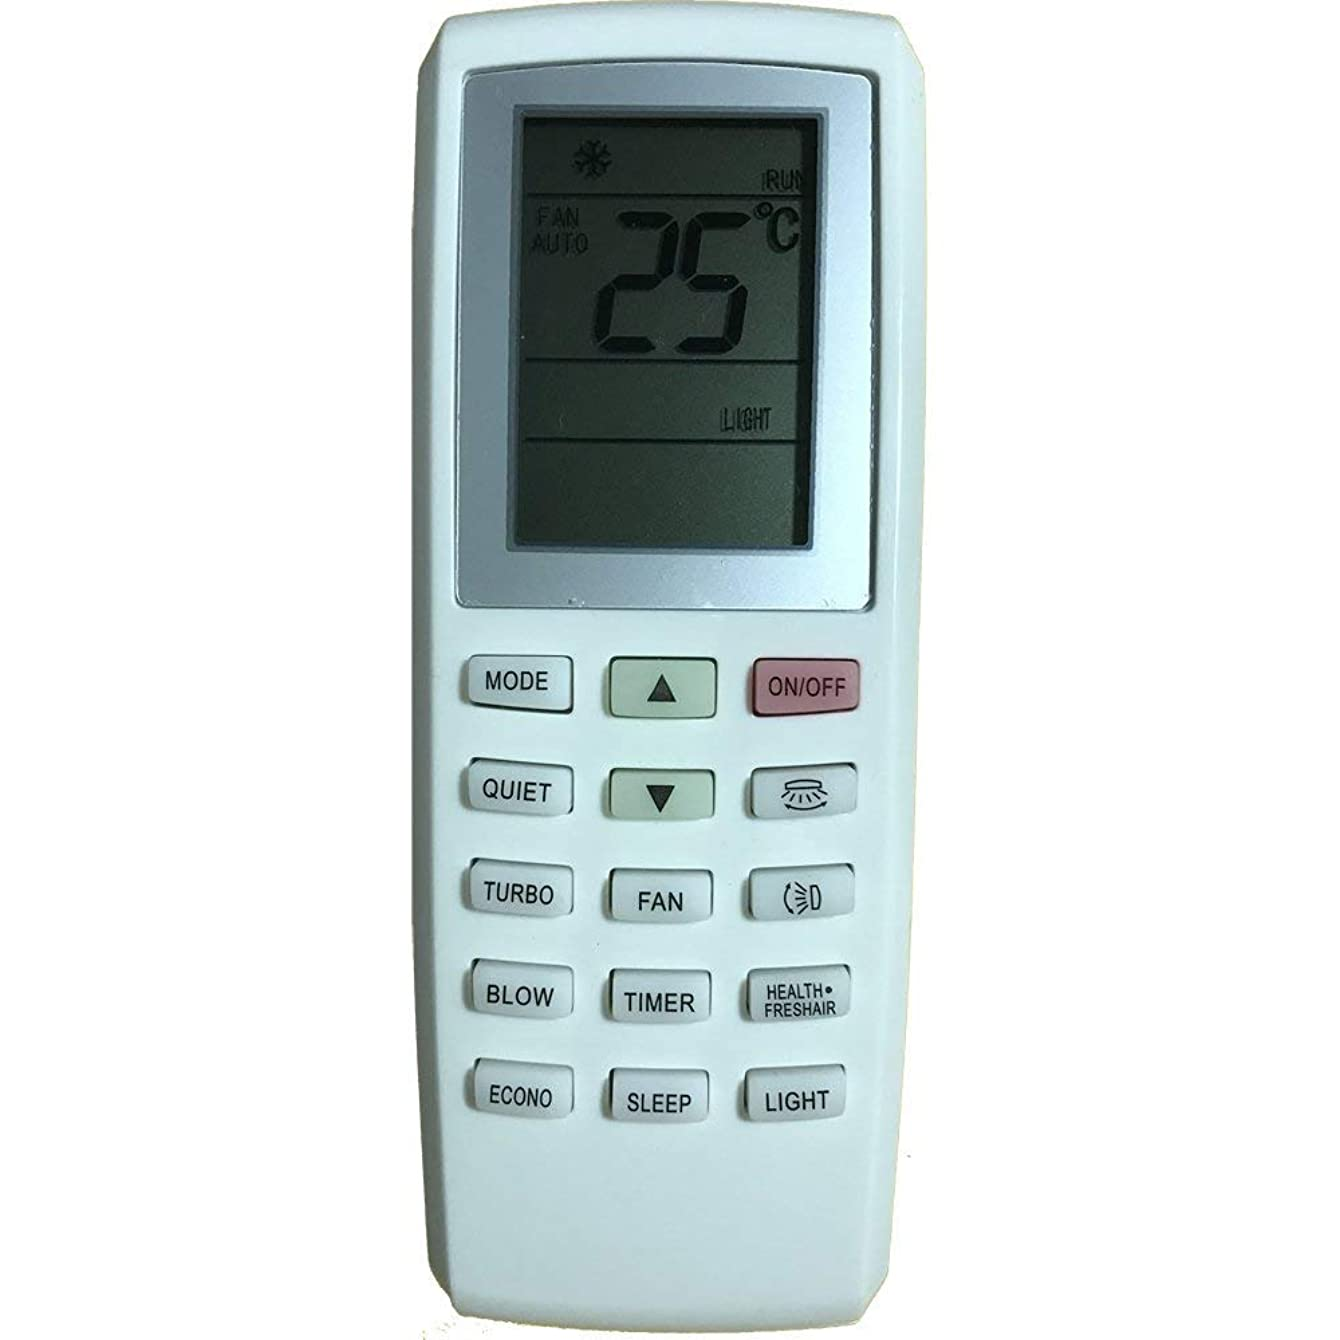 YING RAY Replacement for Lennox Air Conditioner Remote Control for Model YV1FB7